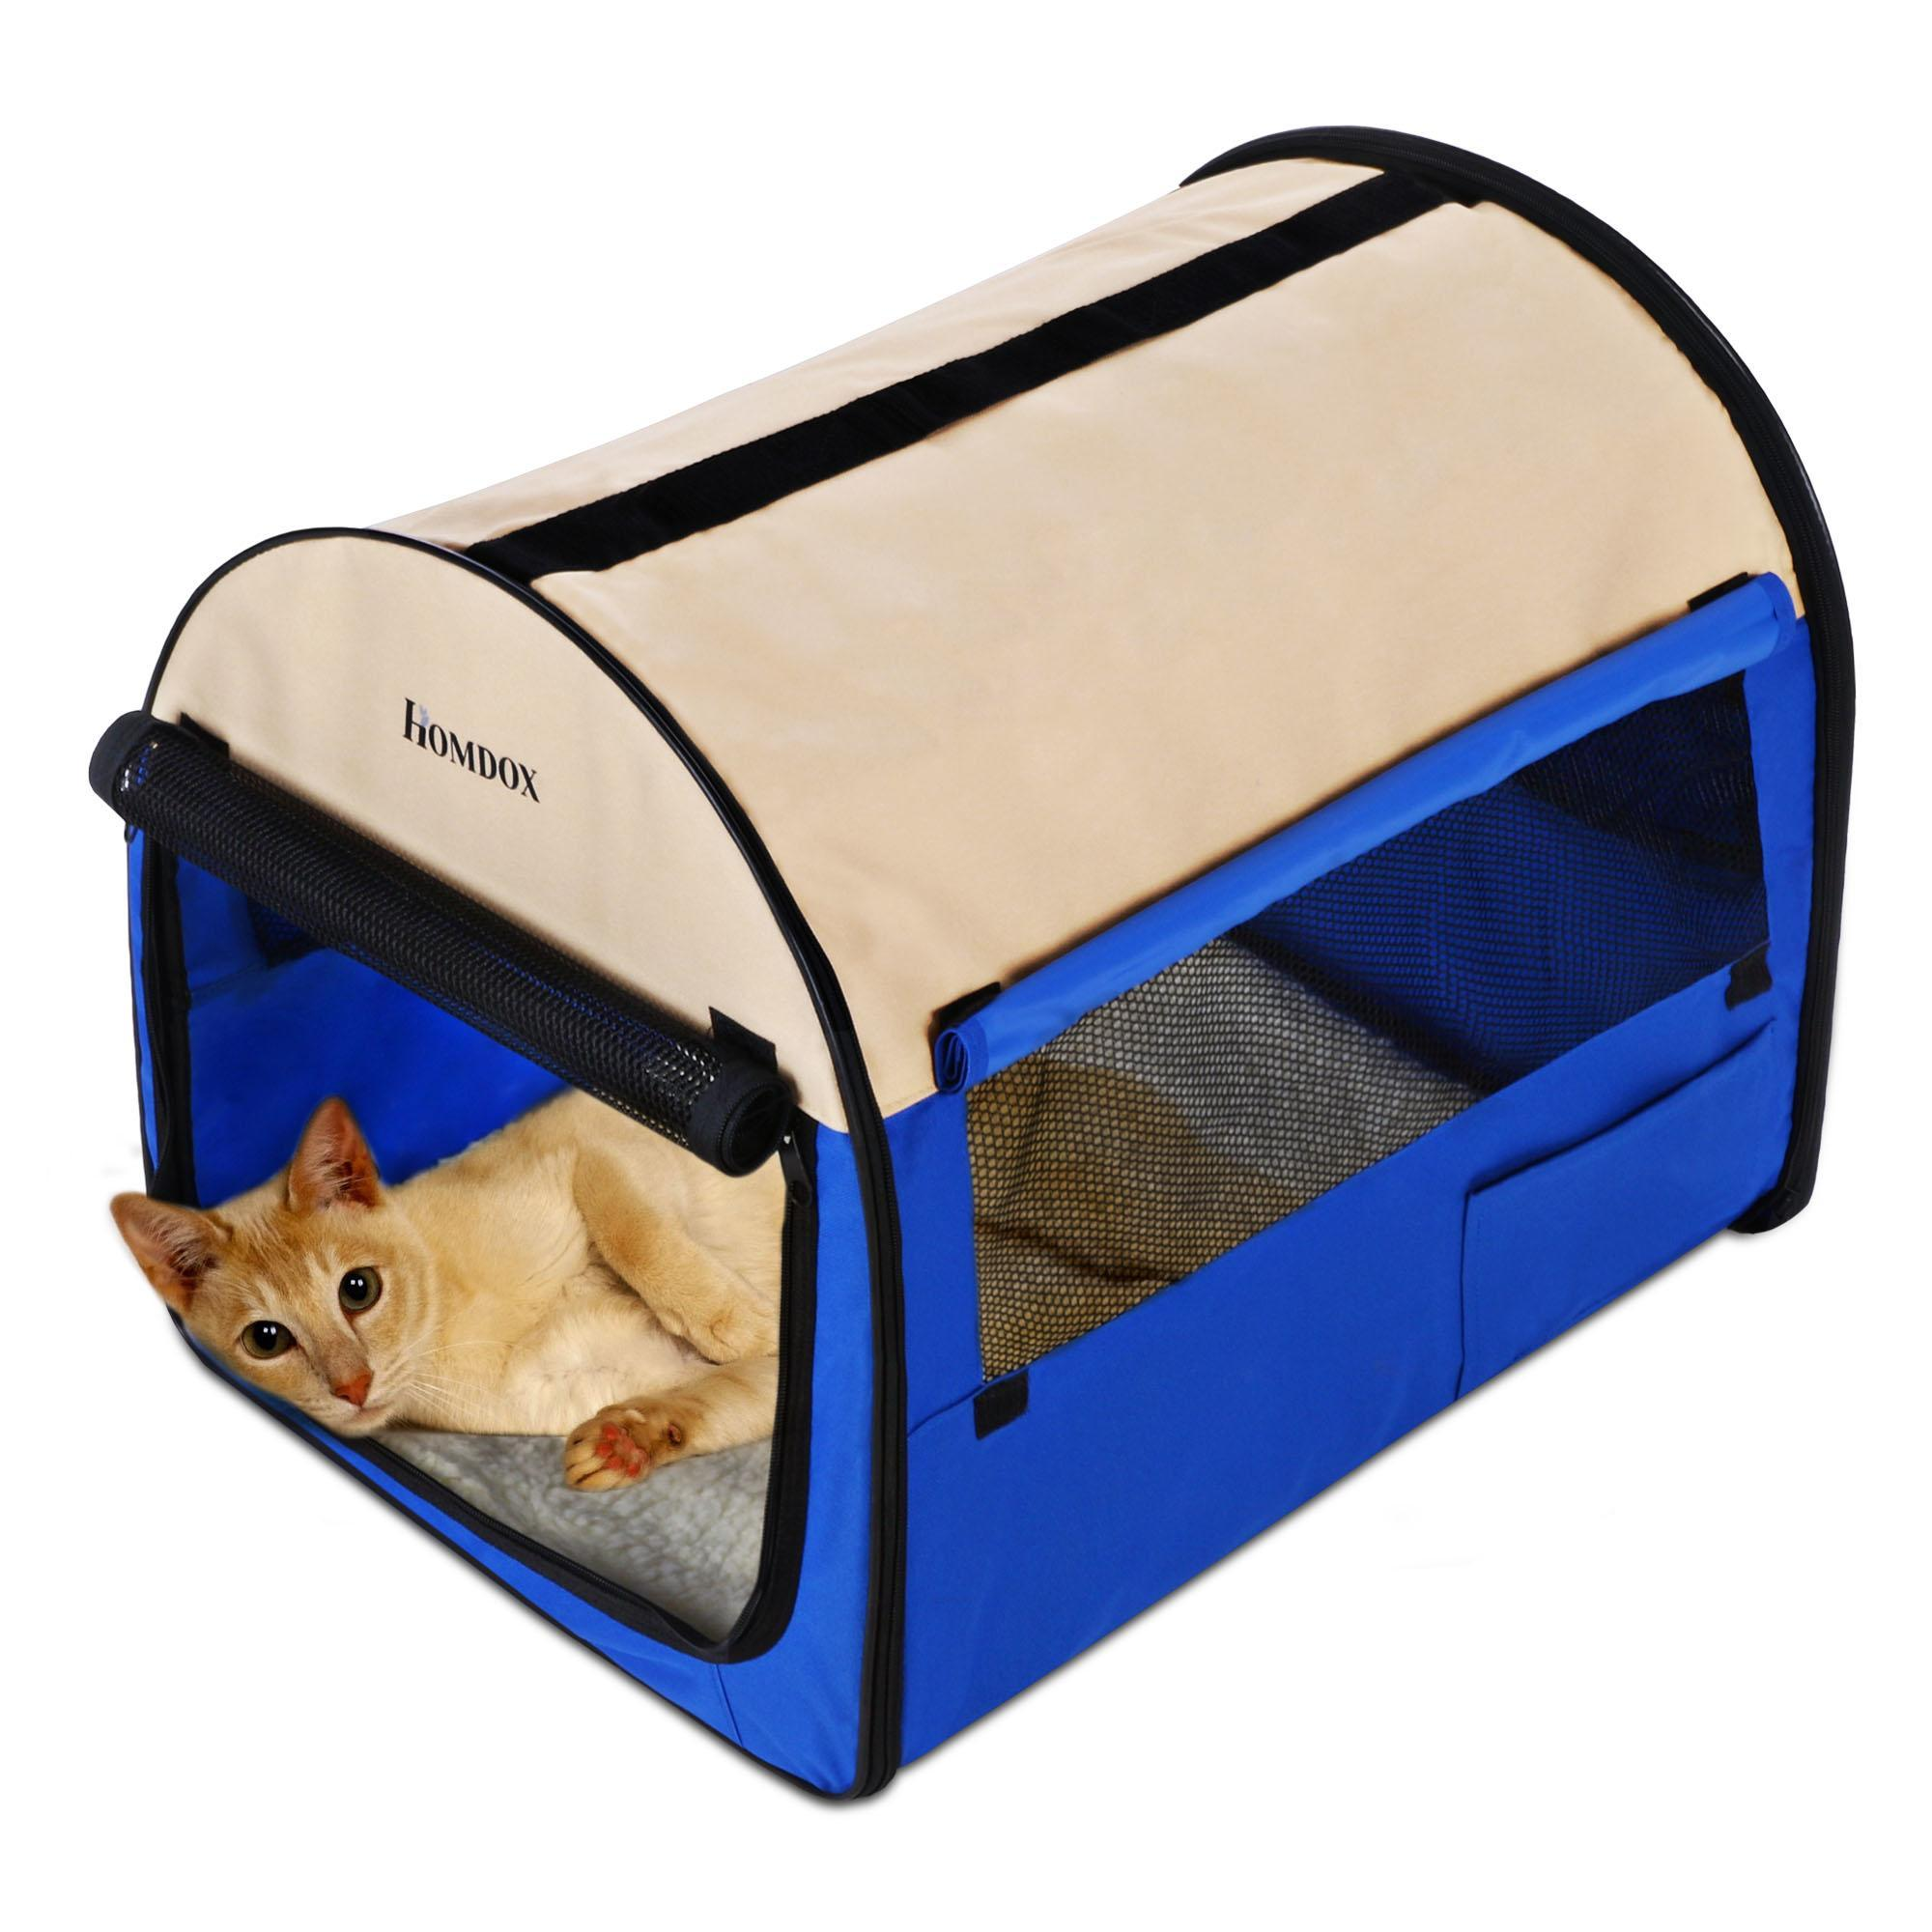 38inch Washable Folding Pet Dog Carrier Cage Portable Cat home Crate with Mesh Window PESTE